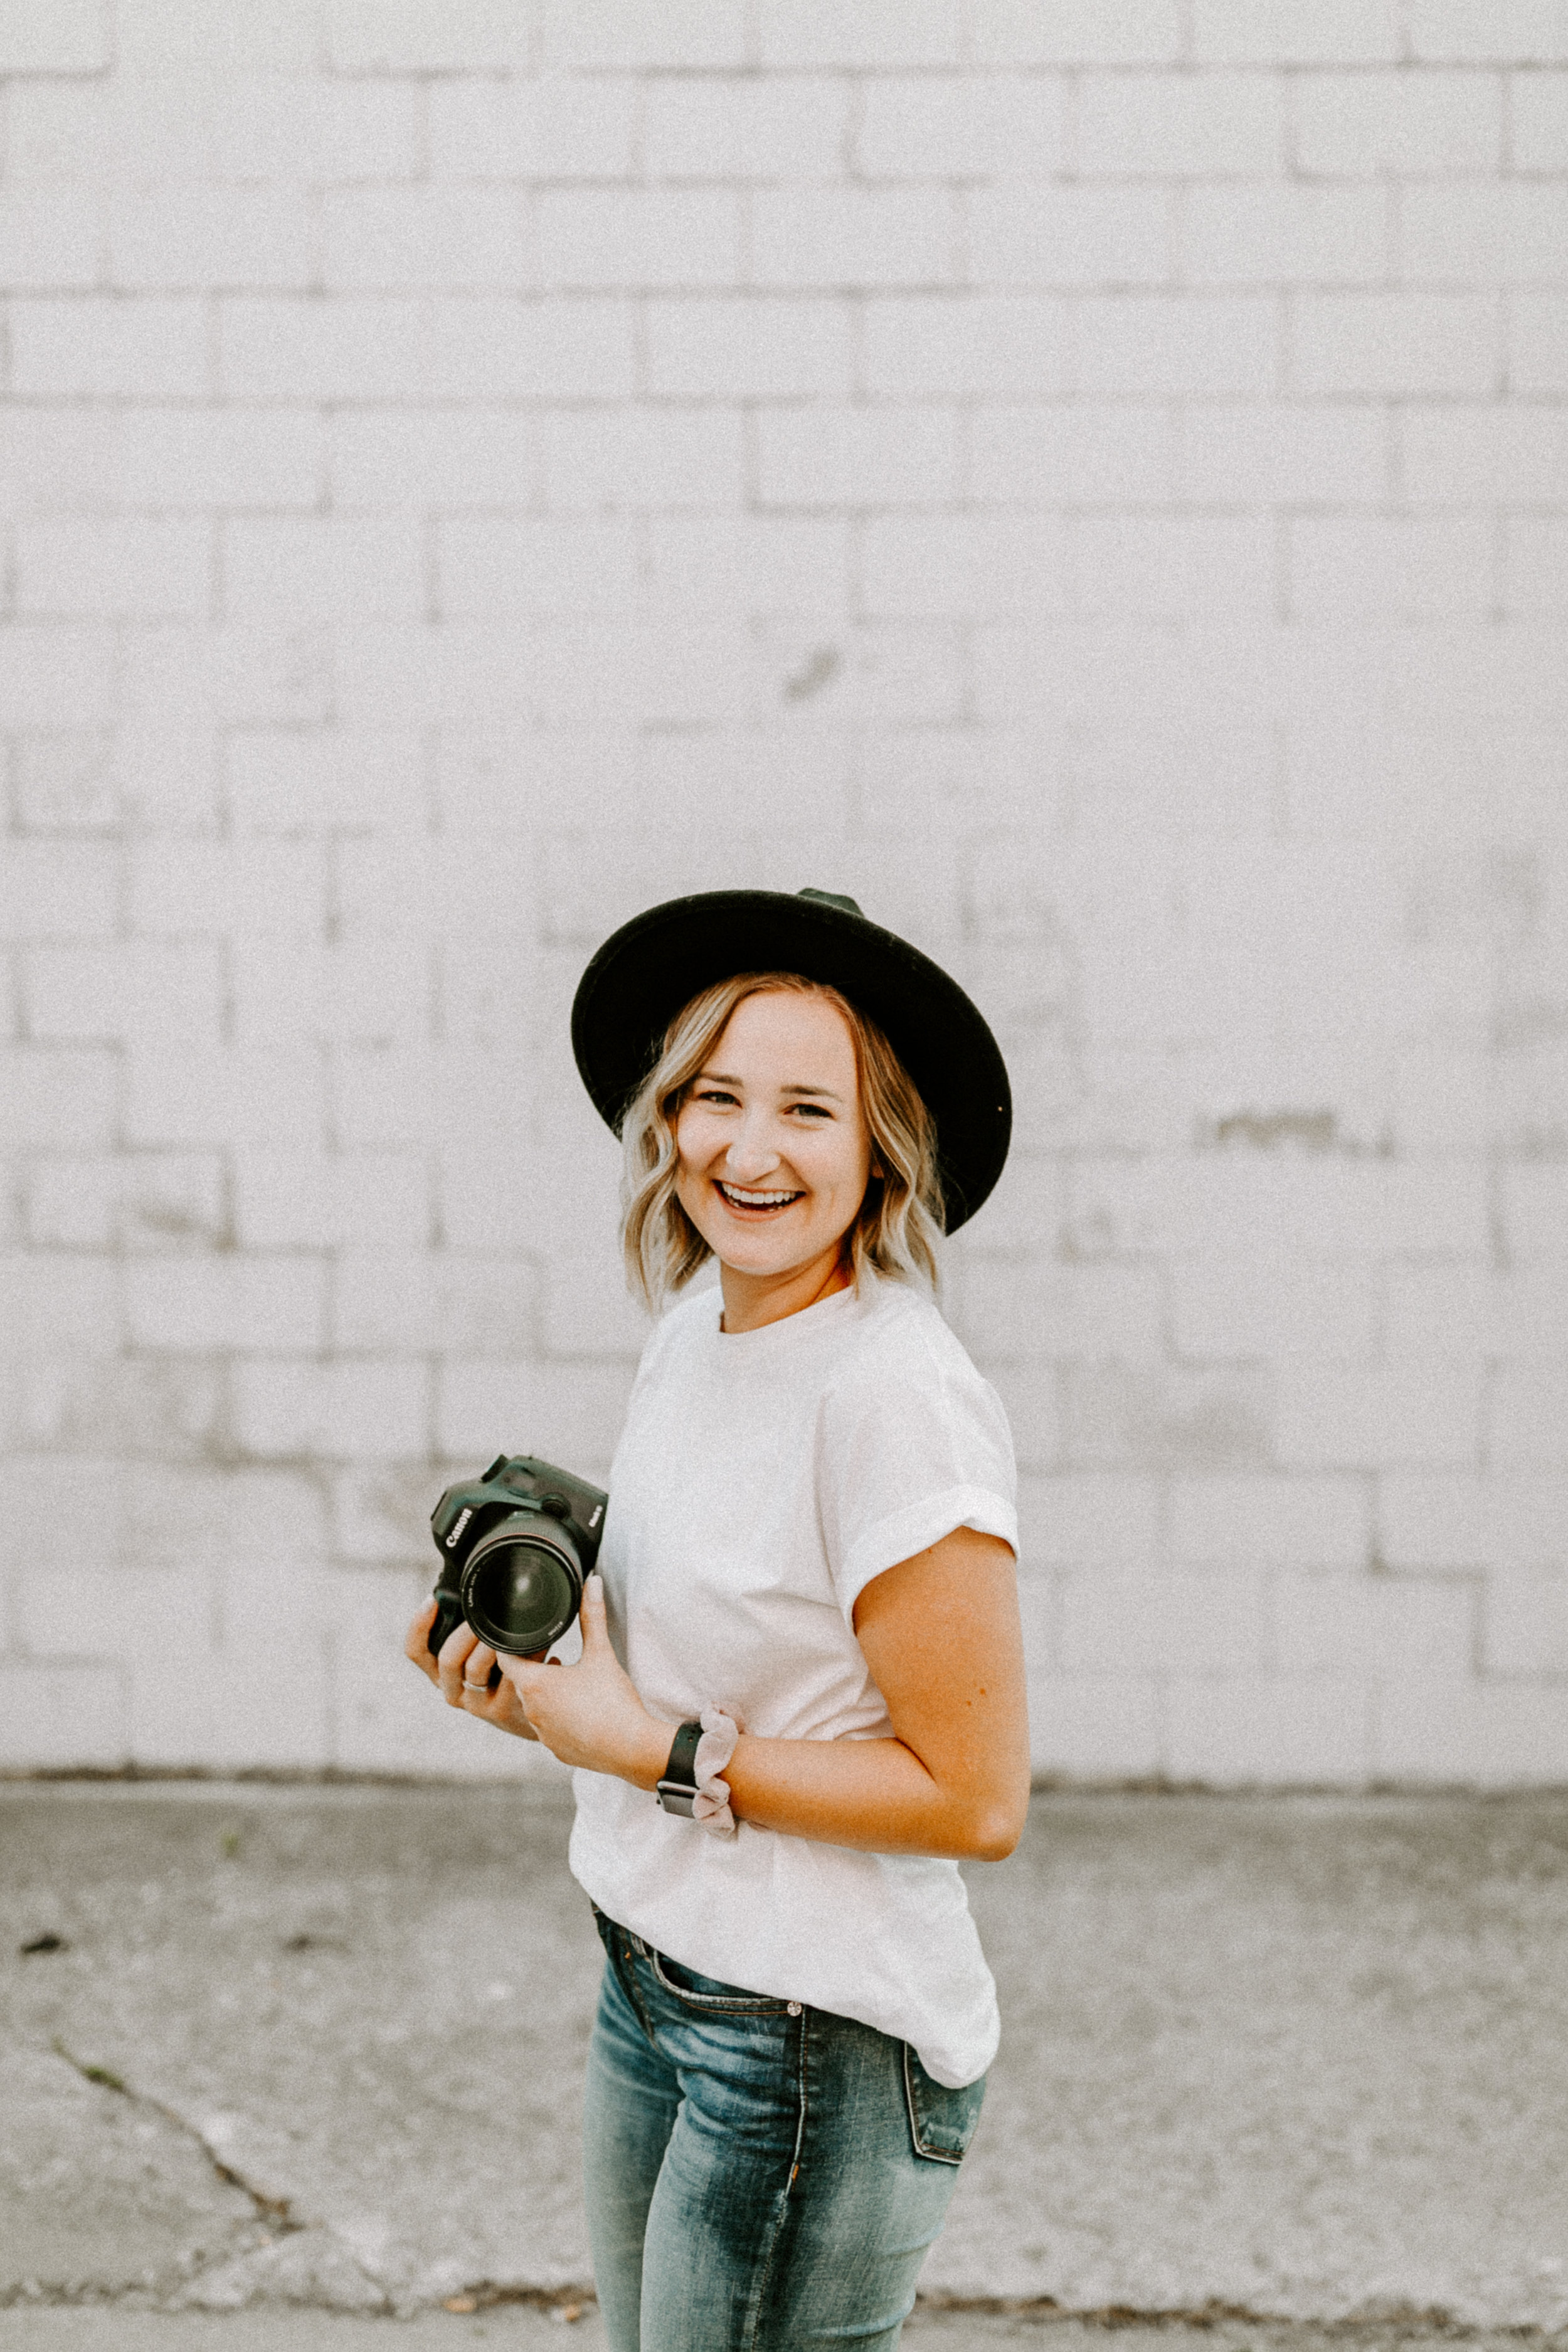 Meet Christina - This sweet girl studied photography in Montanaand found her love for weddings and coupleswhile she was there. She loves snuggling hernew baby kitty and will never turn down a coffeedate! She's currently living in Dubuque butheaded back to the Des Moines area SOON!